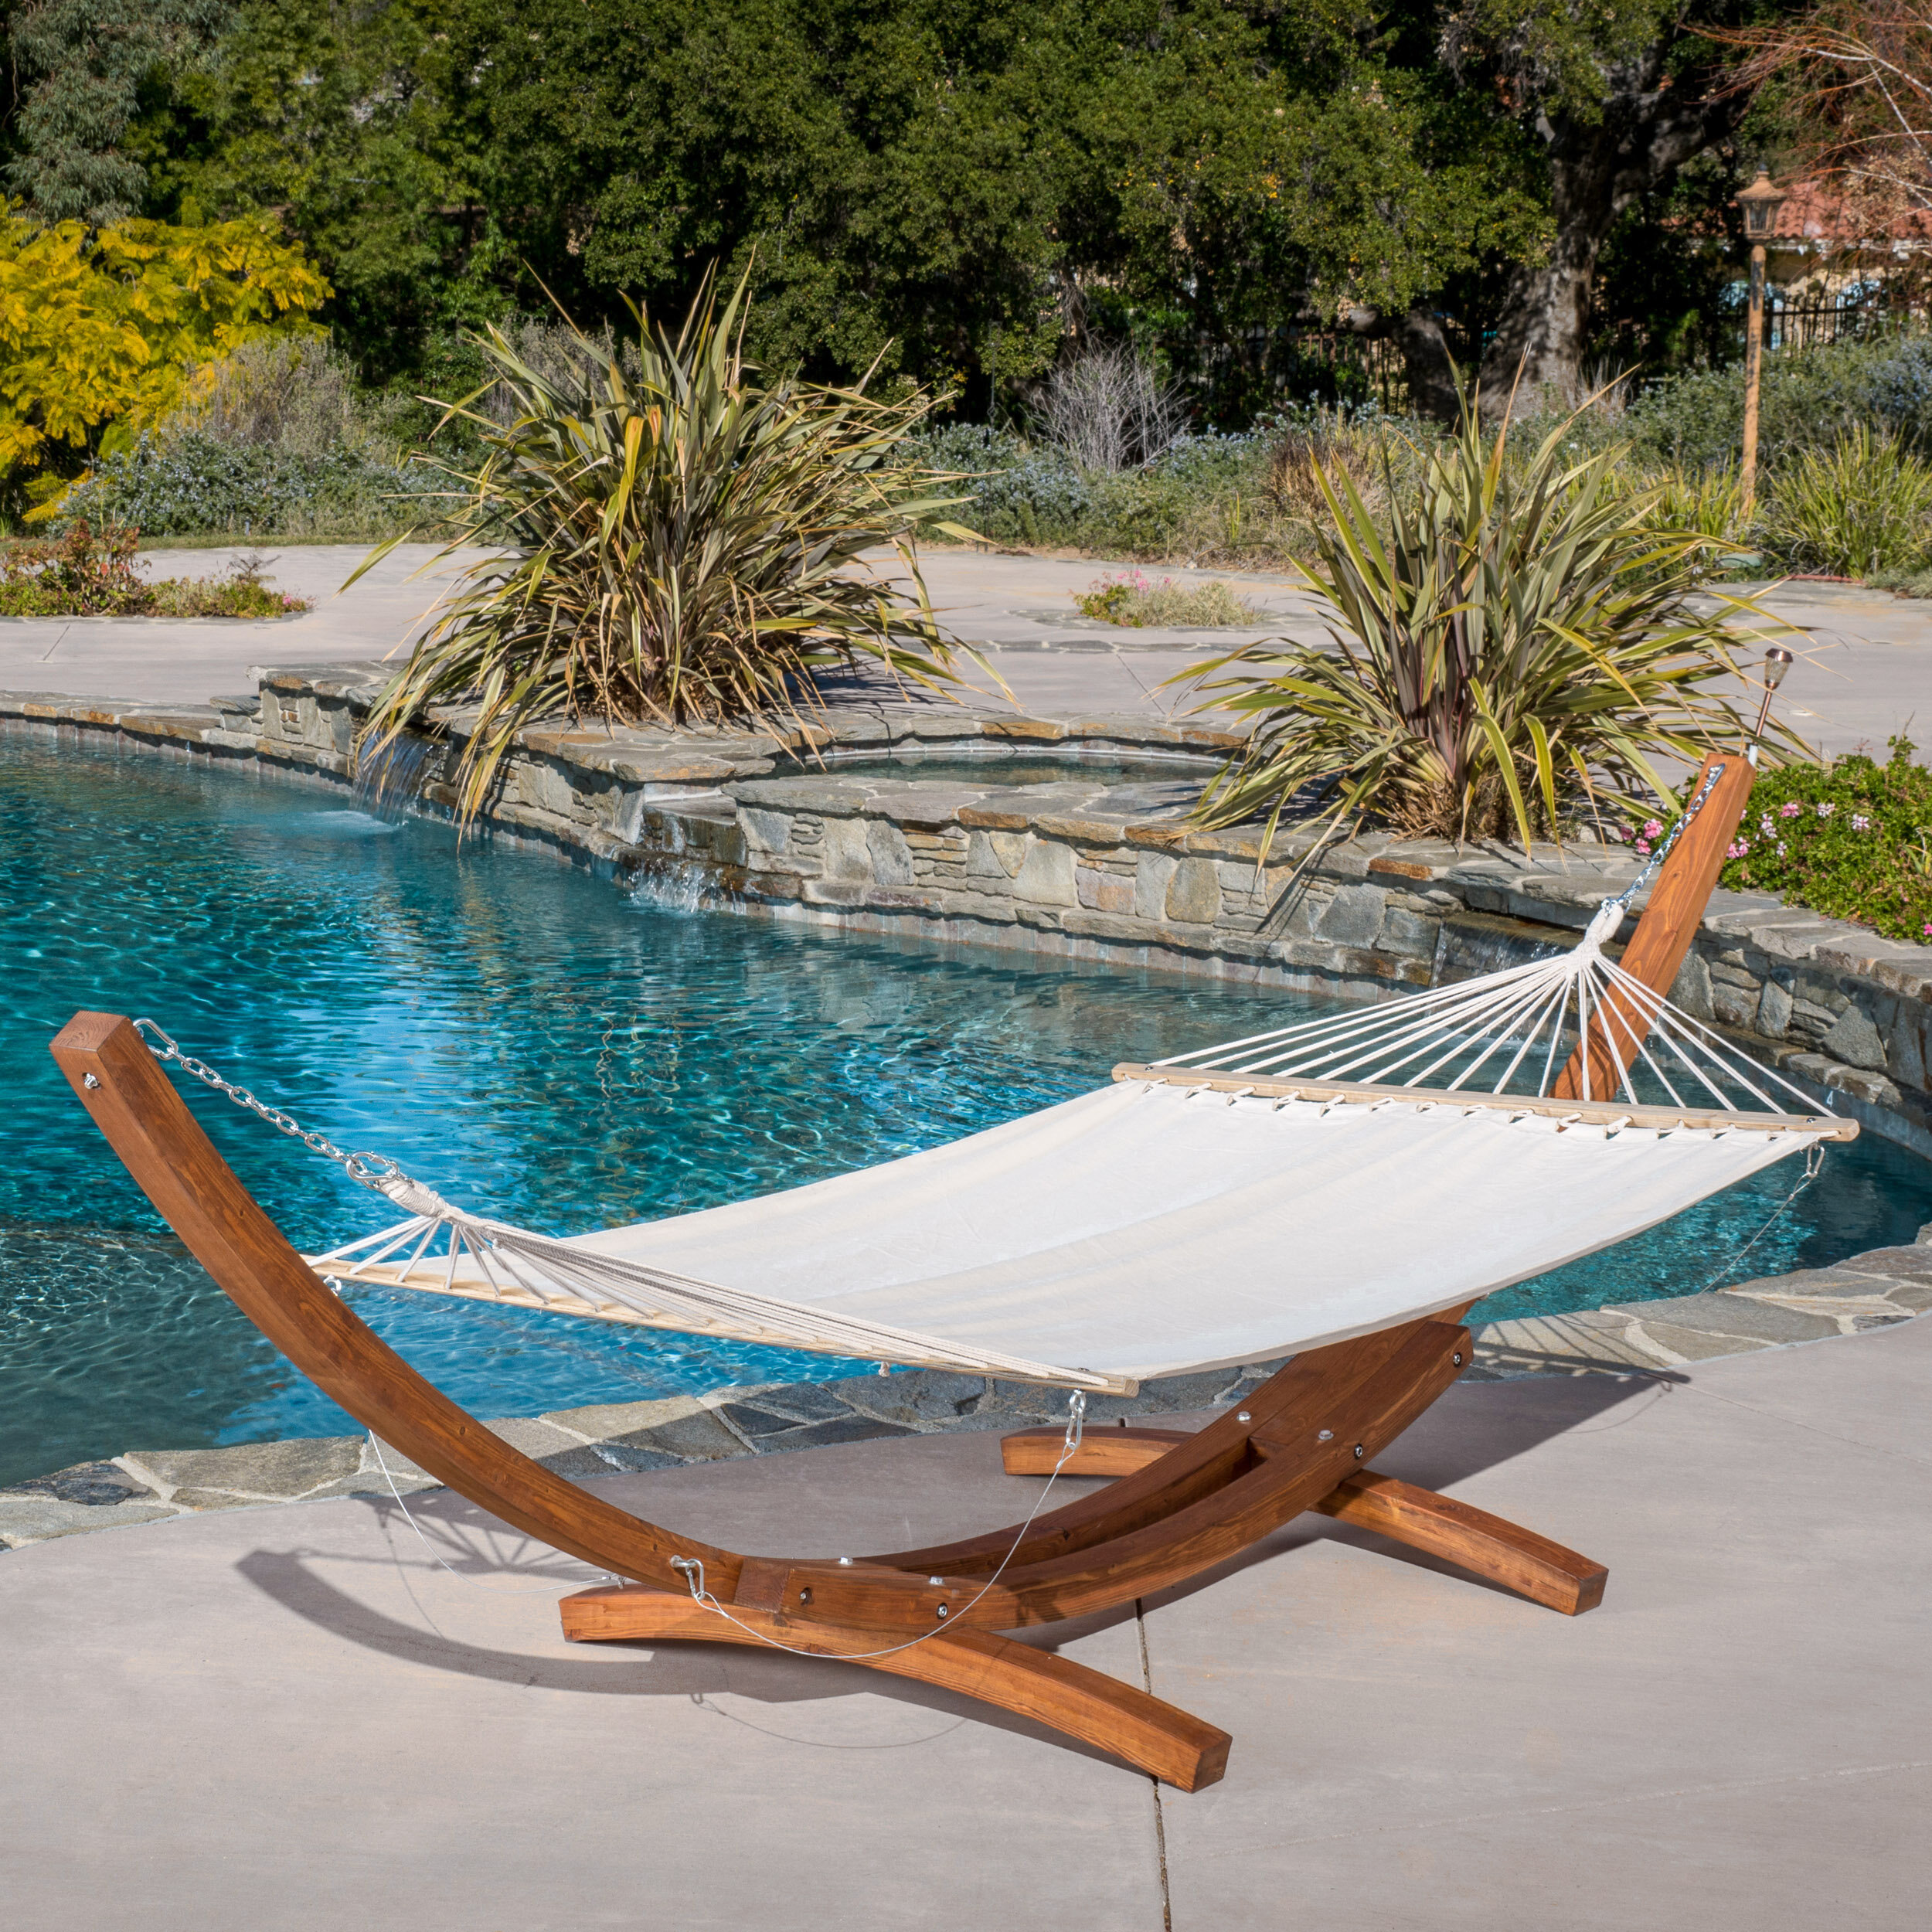 nice swing for ready white egg cheap wicker hammock double chair balcony metal reclining circle arch free deck patio furniture winter ebay rattan hanging make a your with bedroom standing footrest